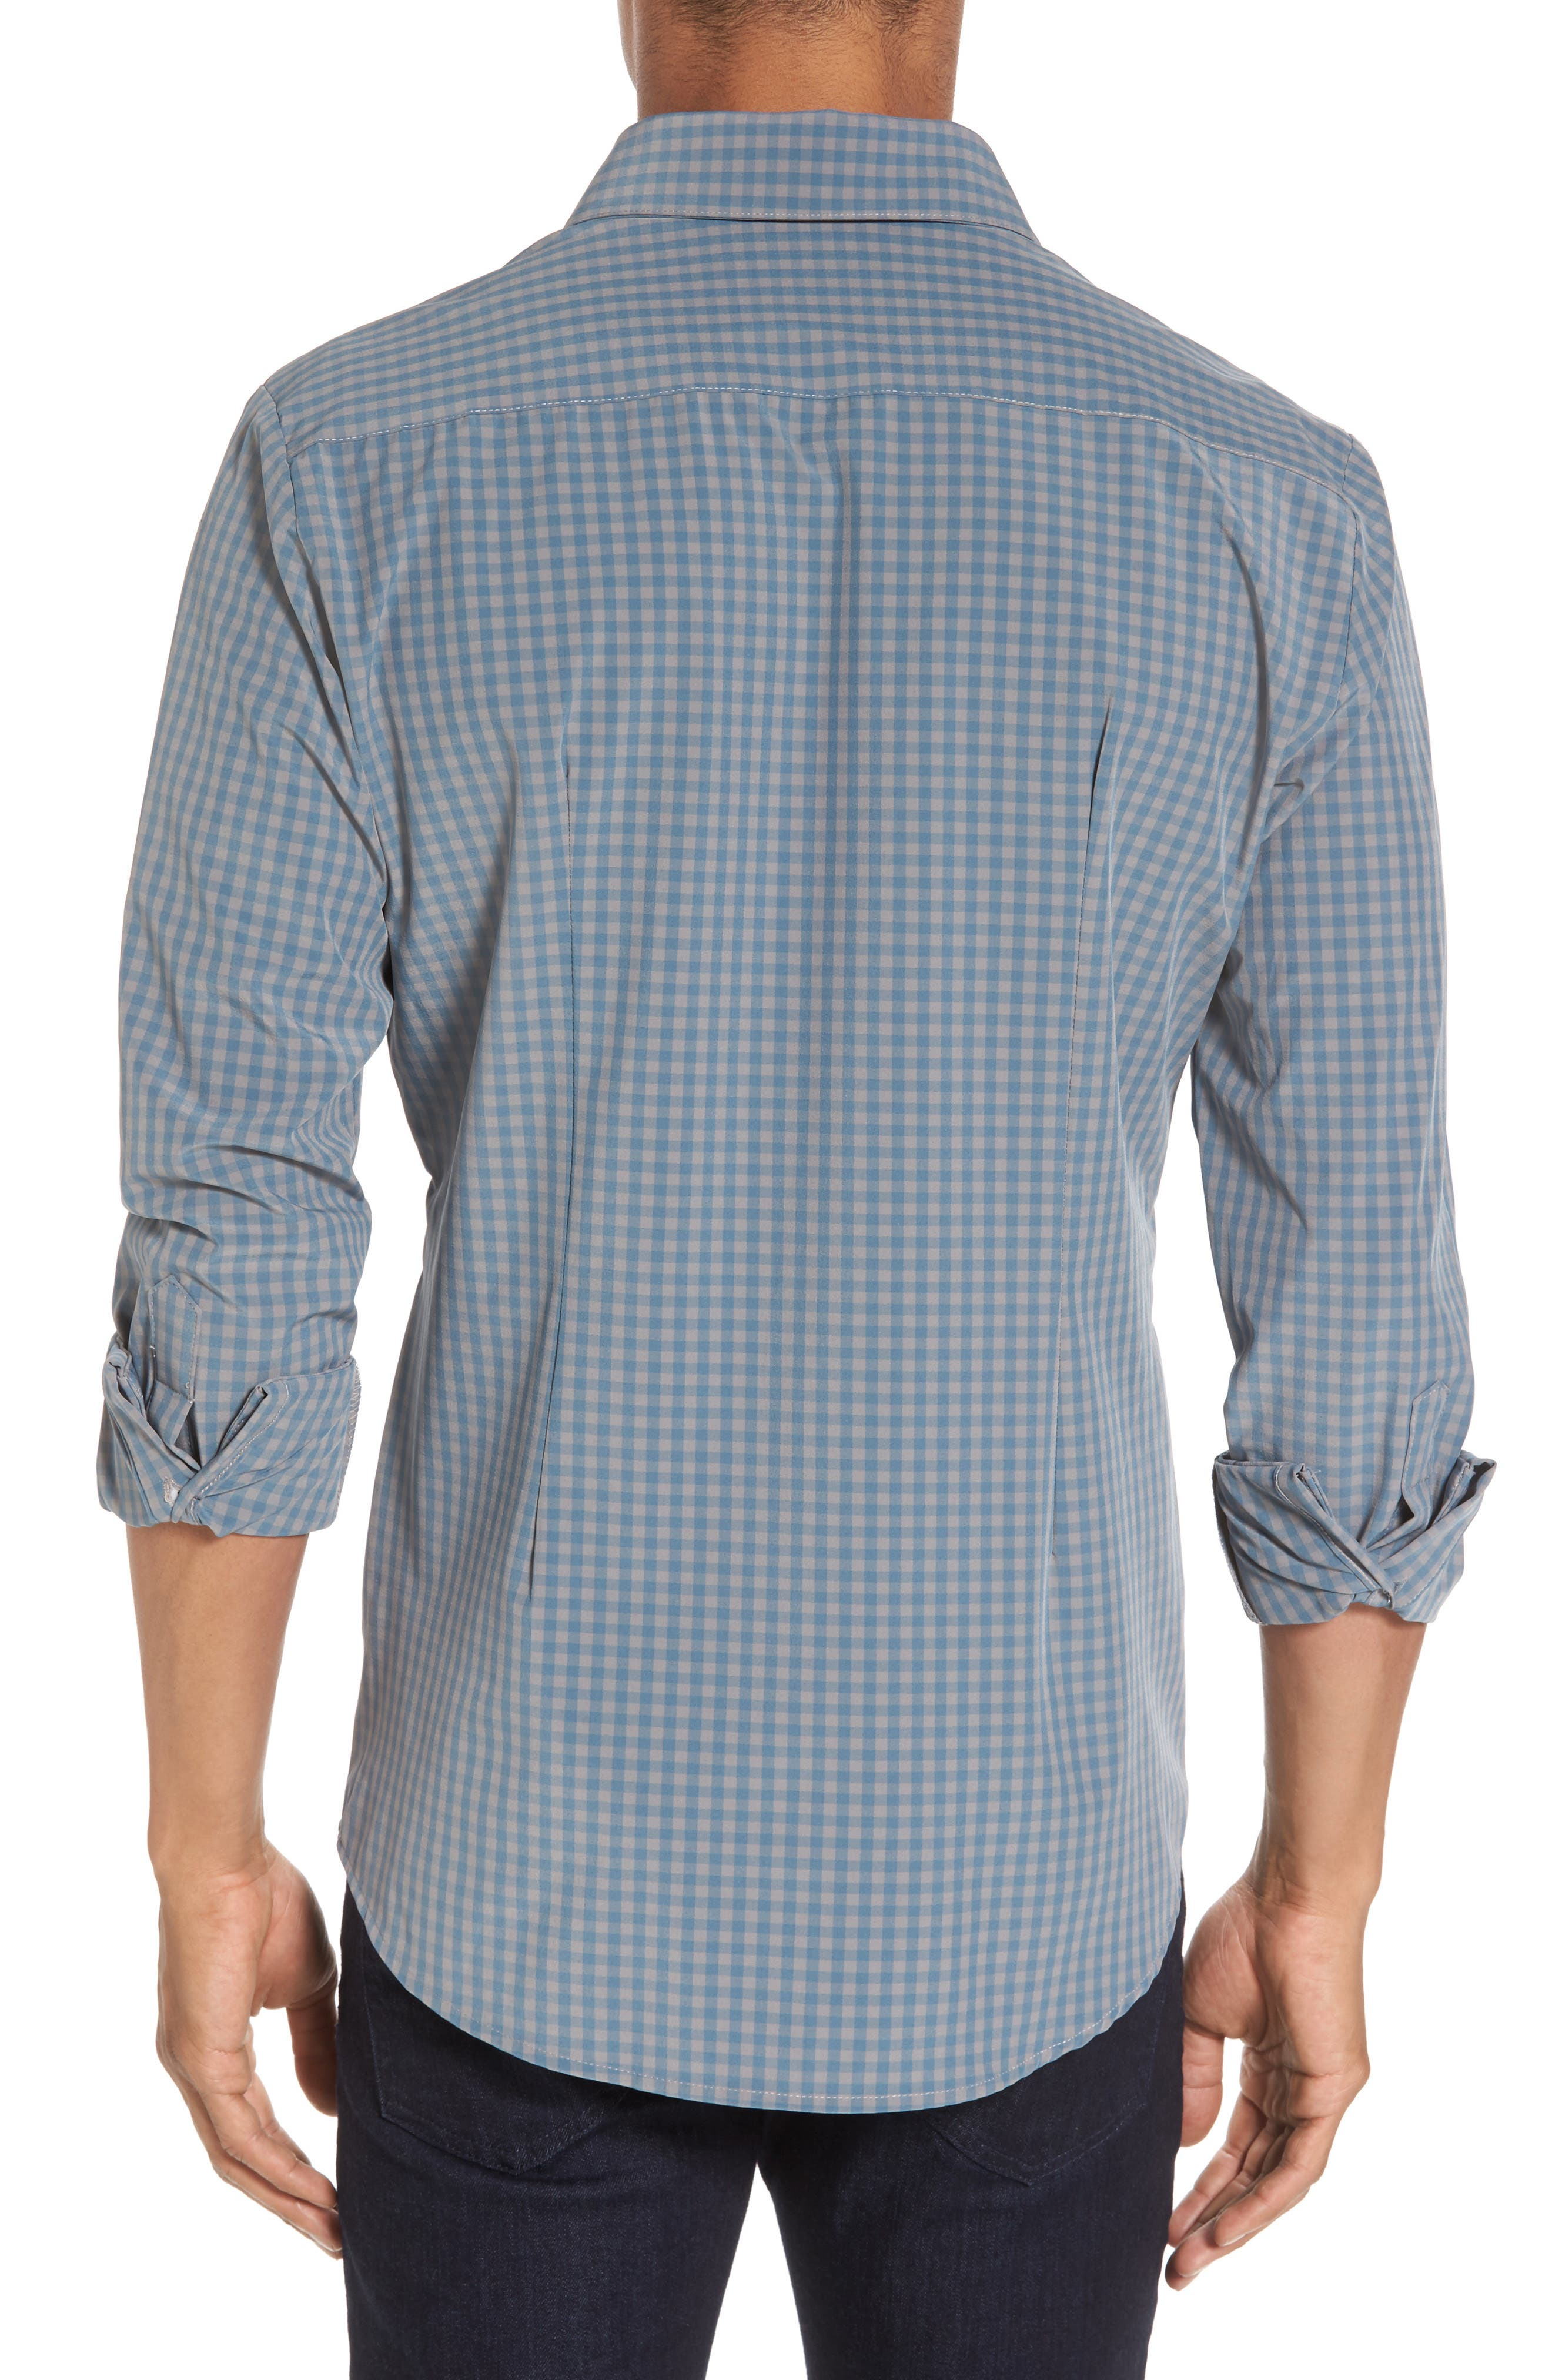 Knox Blue Smoke & Grey Gingham Sport Shirt,                             Alternate thumbnail 2, color,                             Blue